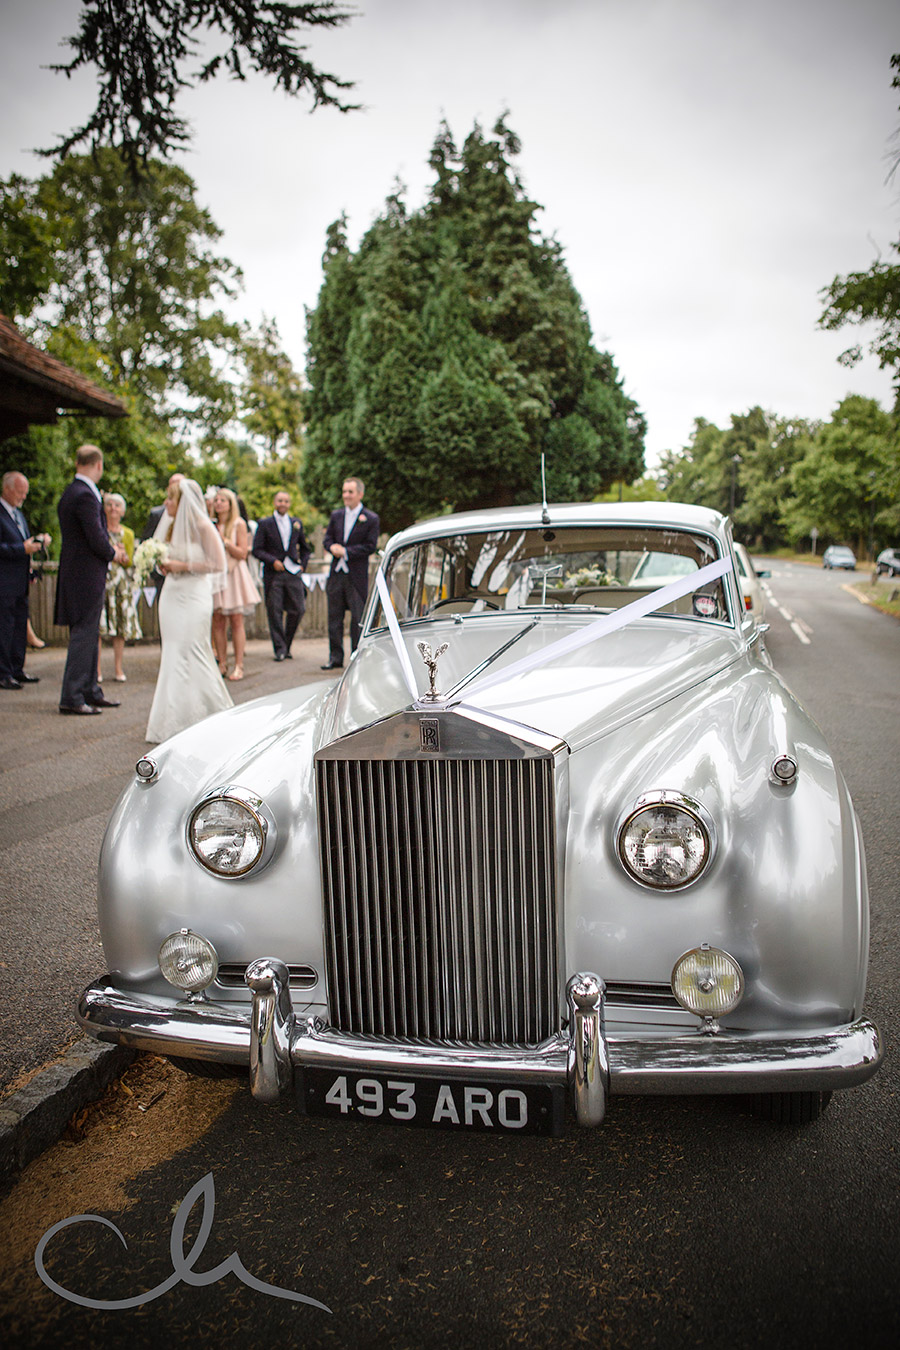 Sundridge-Park-Manor-Wedding-Photographer-46